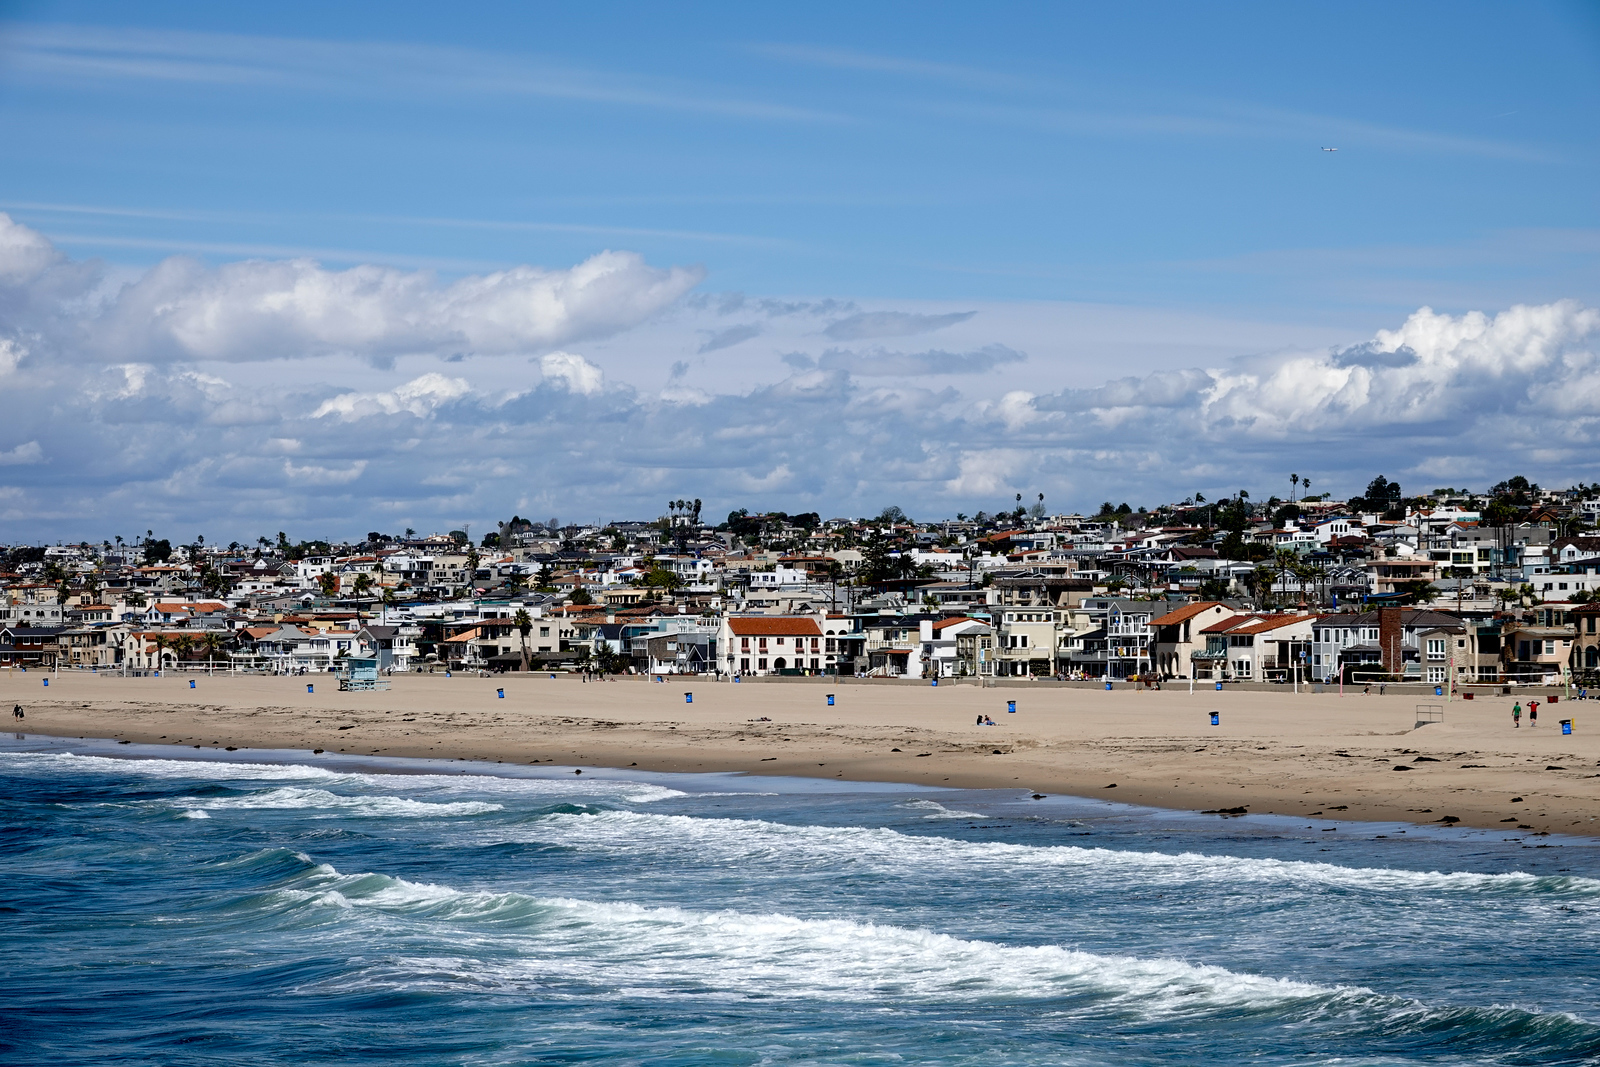 A view of the Hermosa Beach coastline from the Hermoa Pier